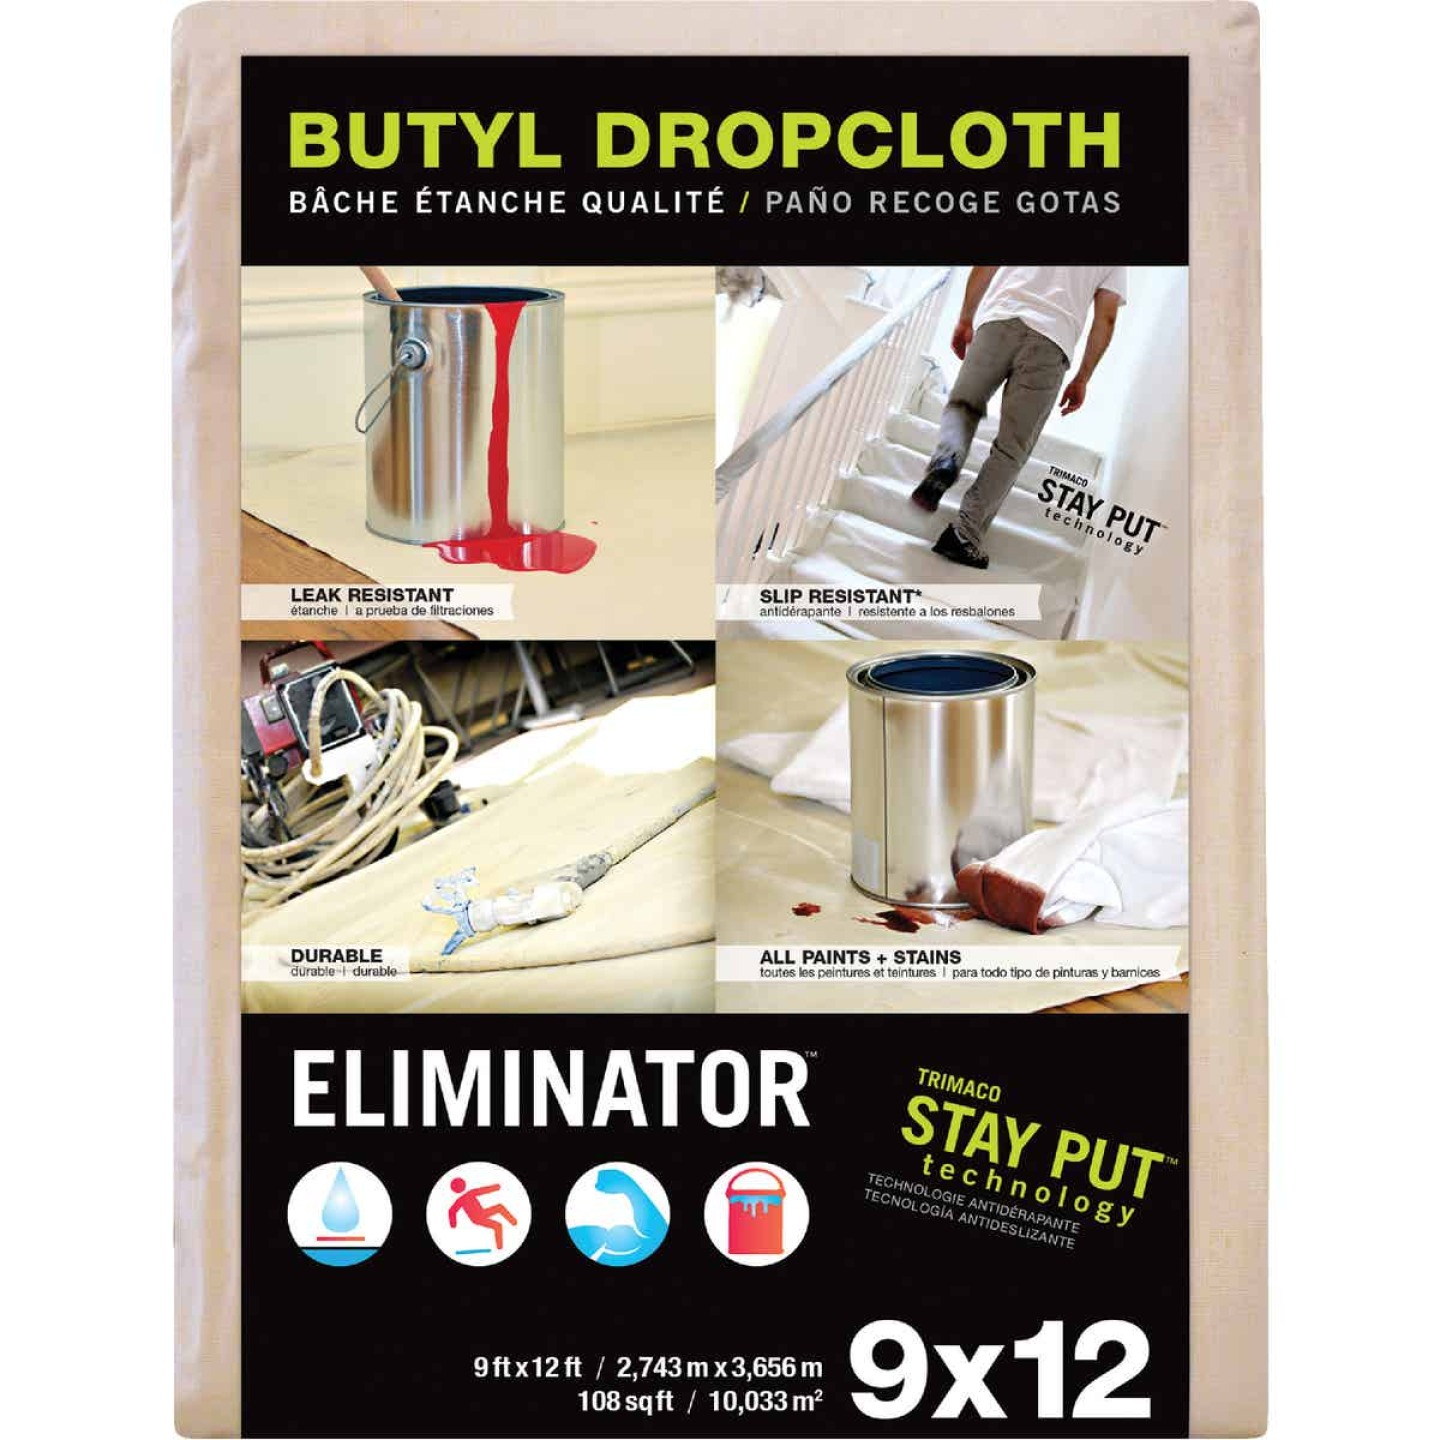 Trimaco Eliminator Butyl-Back Canvas 9 Ft. x 12 Ft. Heavy-Duty Drop Cloth Image 1